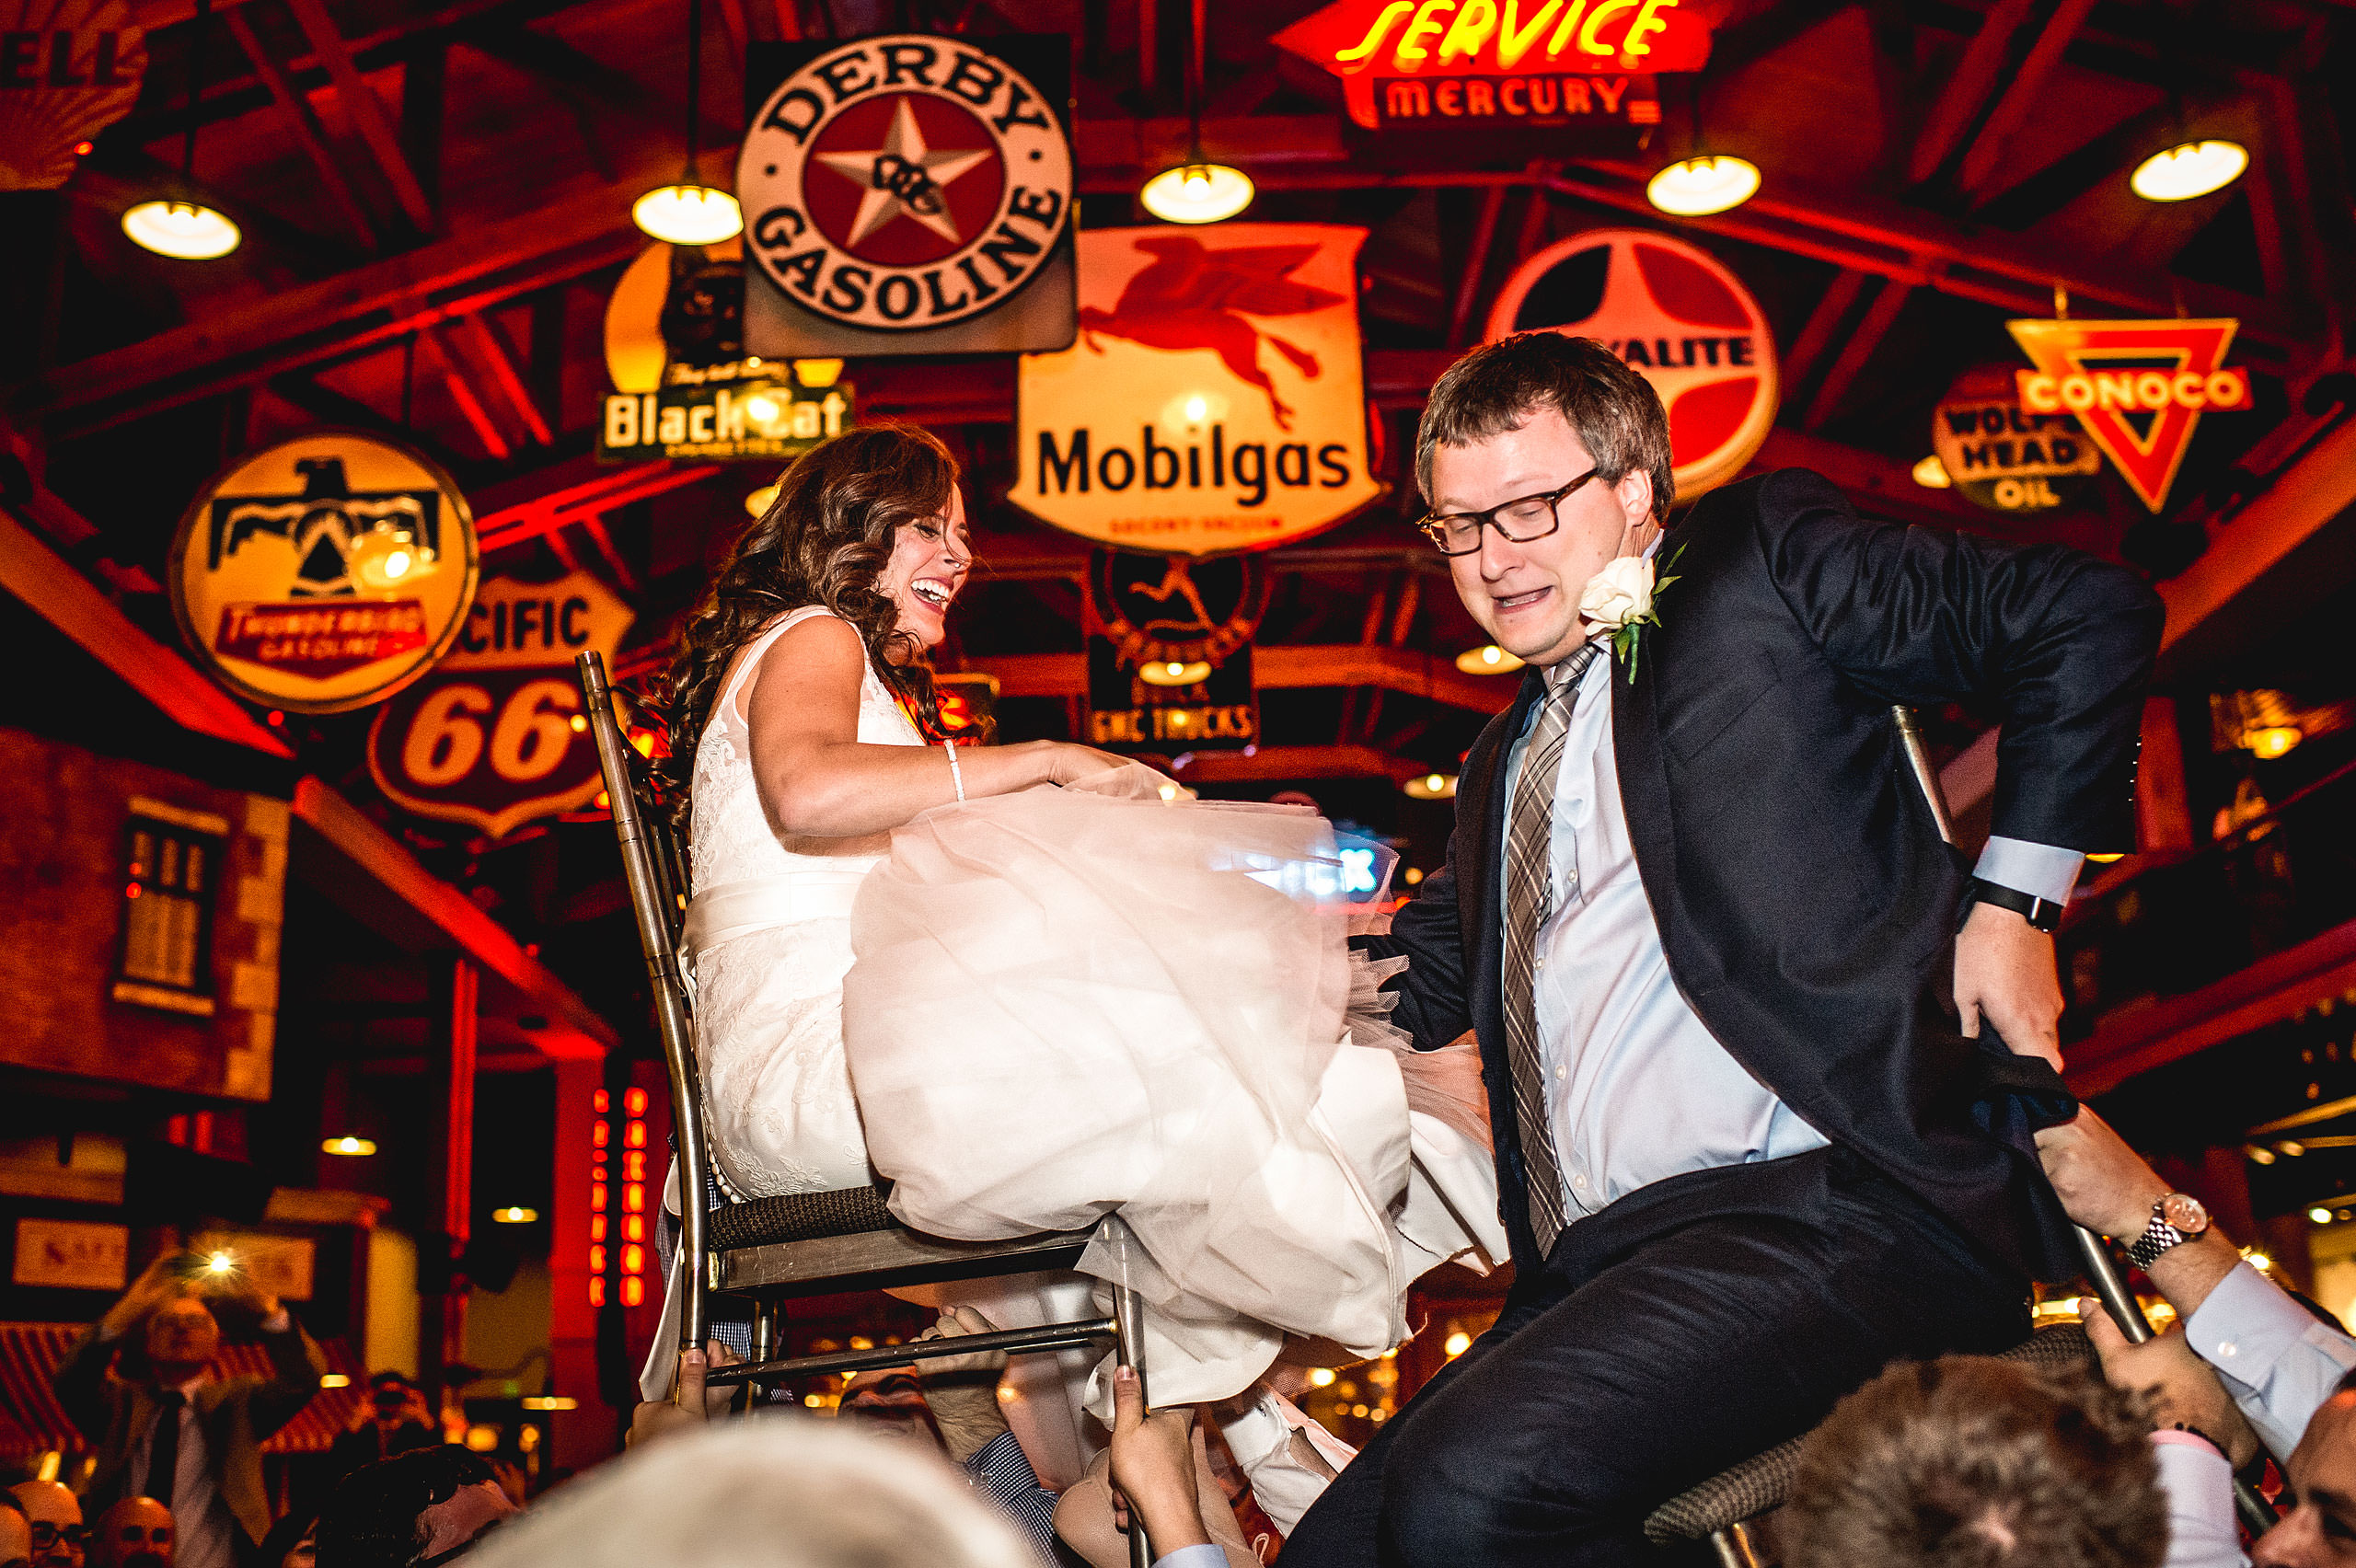 a bride and groom being lifted on chairs by Calgary Jewish Wedding Photographer Sean LeBlanc